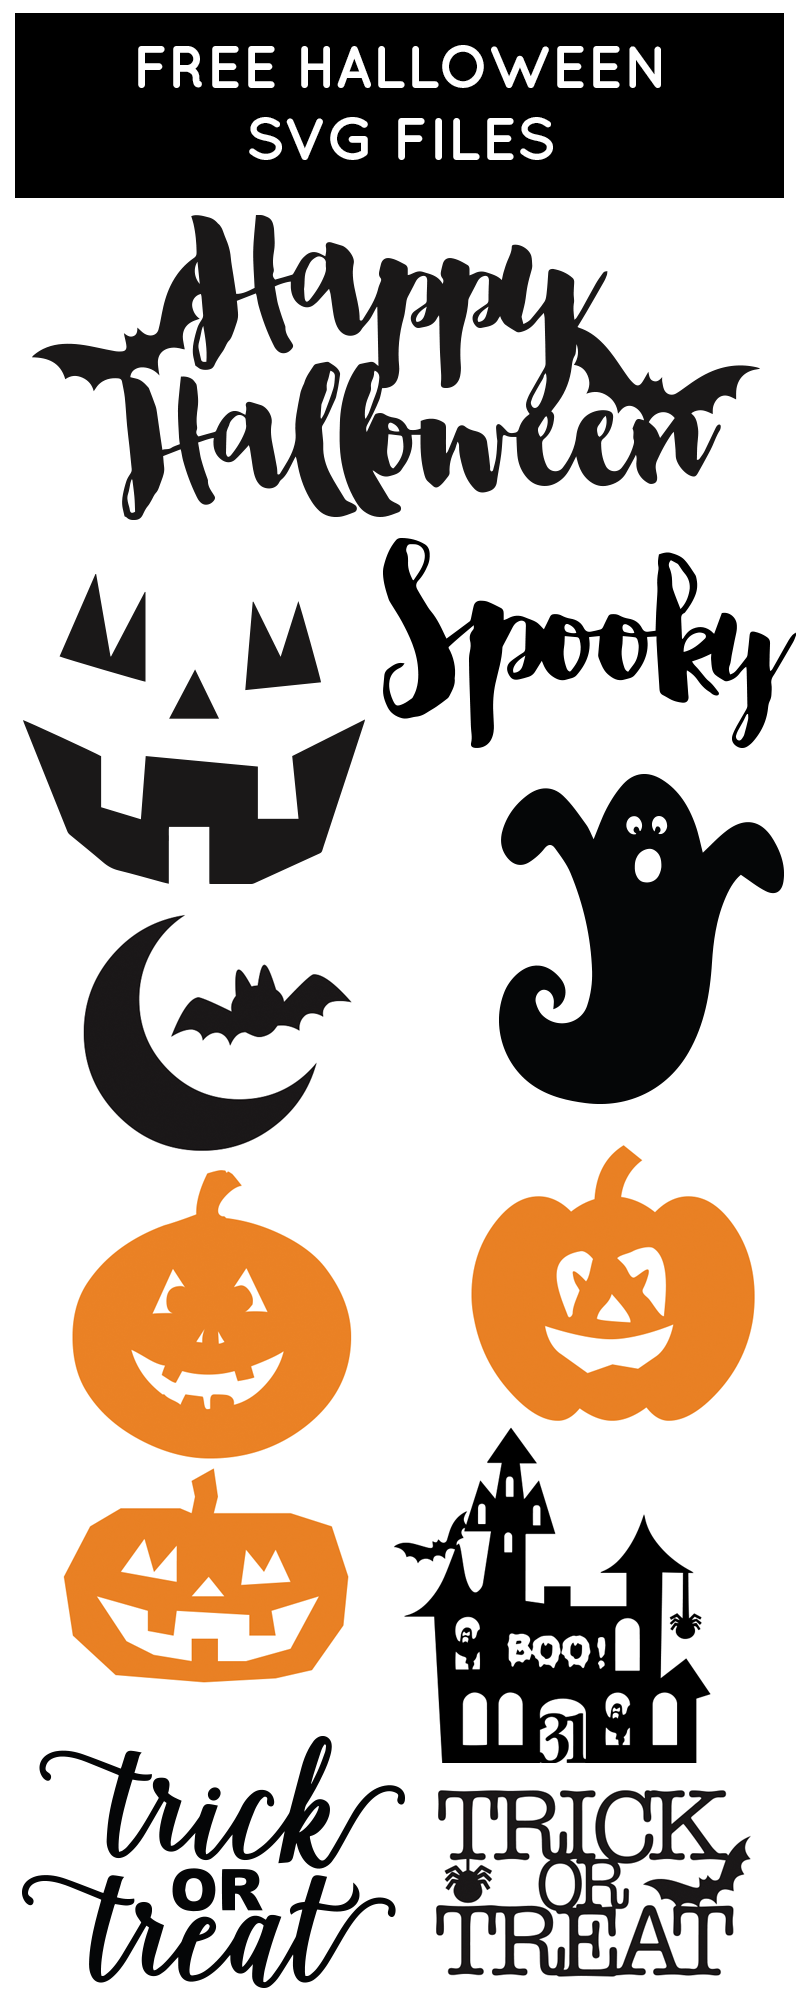 Free Halloween SVG Files from chicfetti Free SVG Files